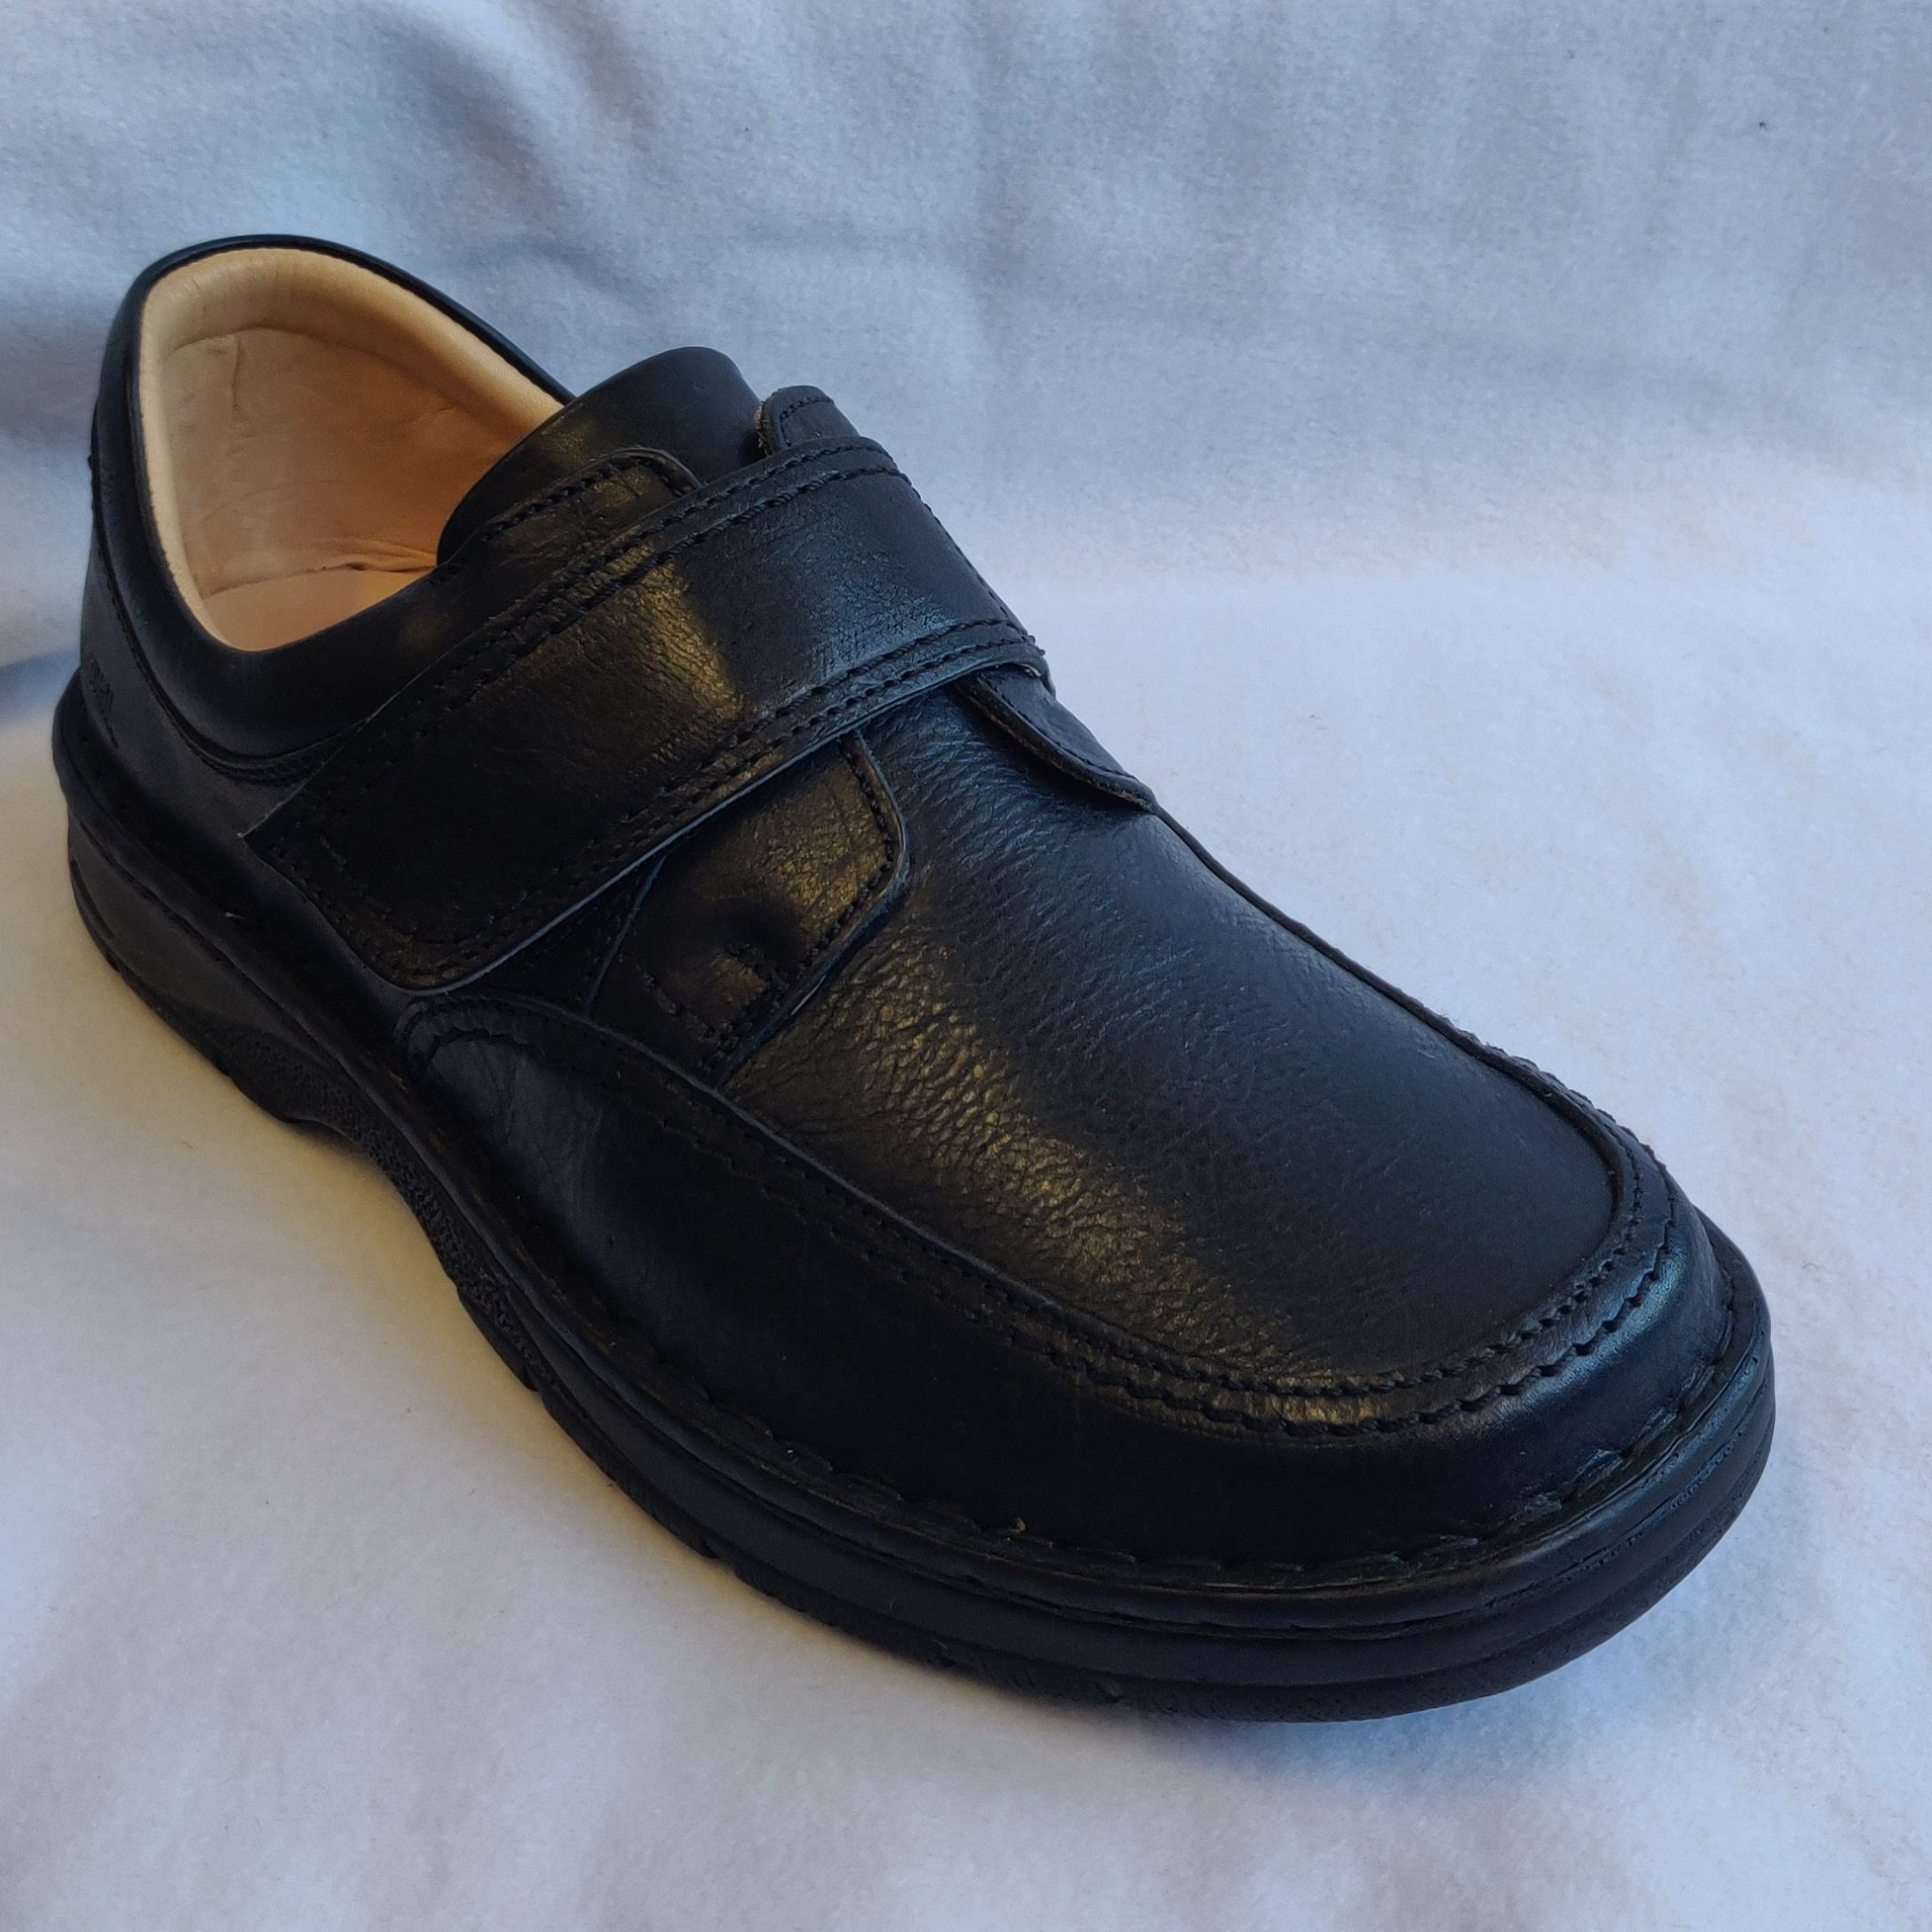 Gents Softwalk Black Leather Velcro Casuals (9)